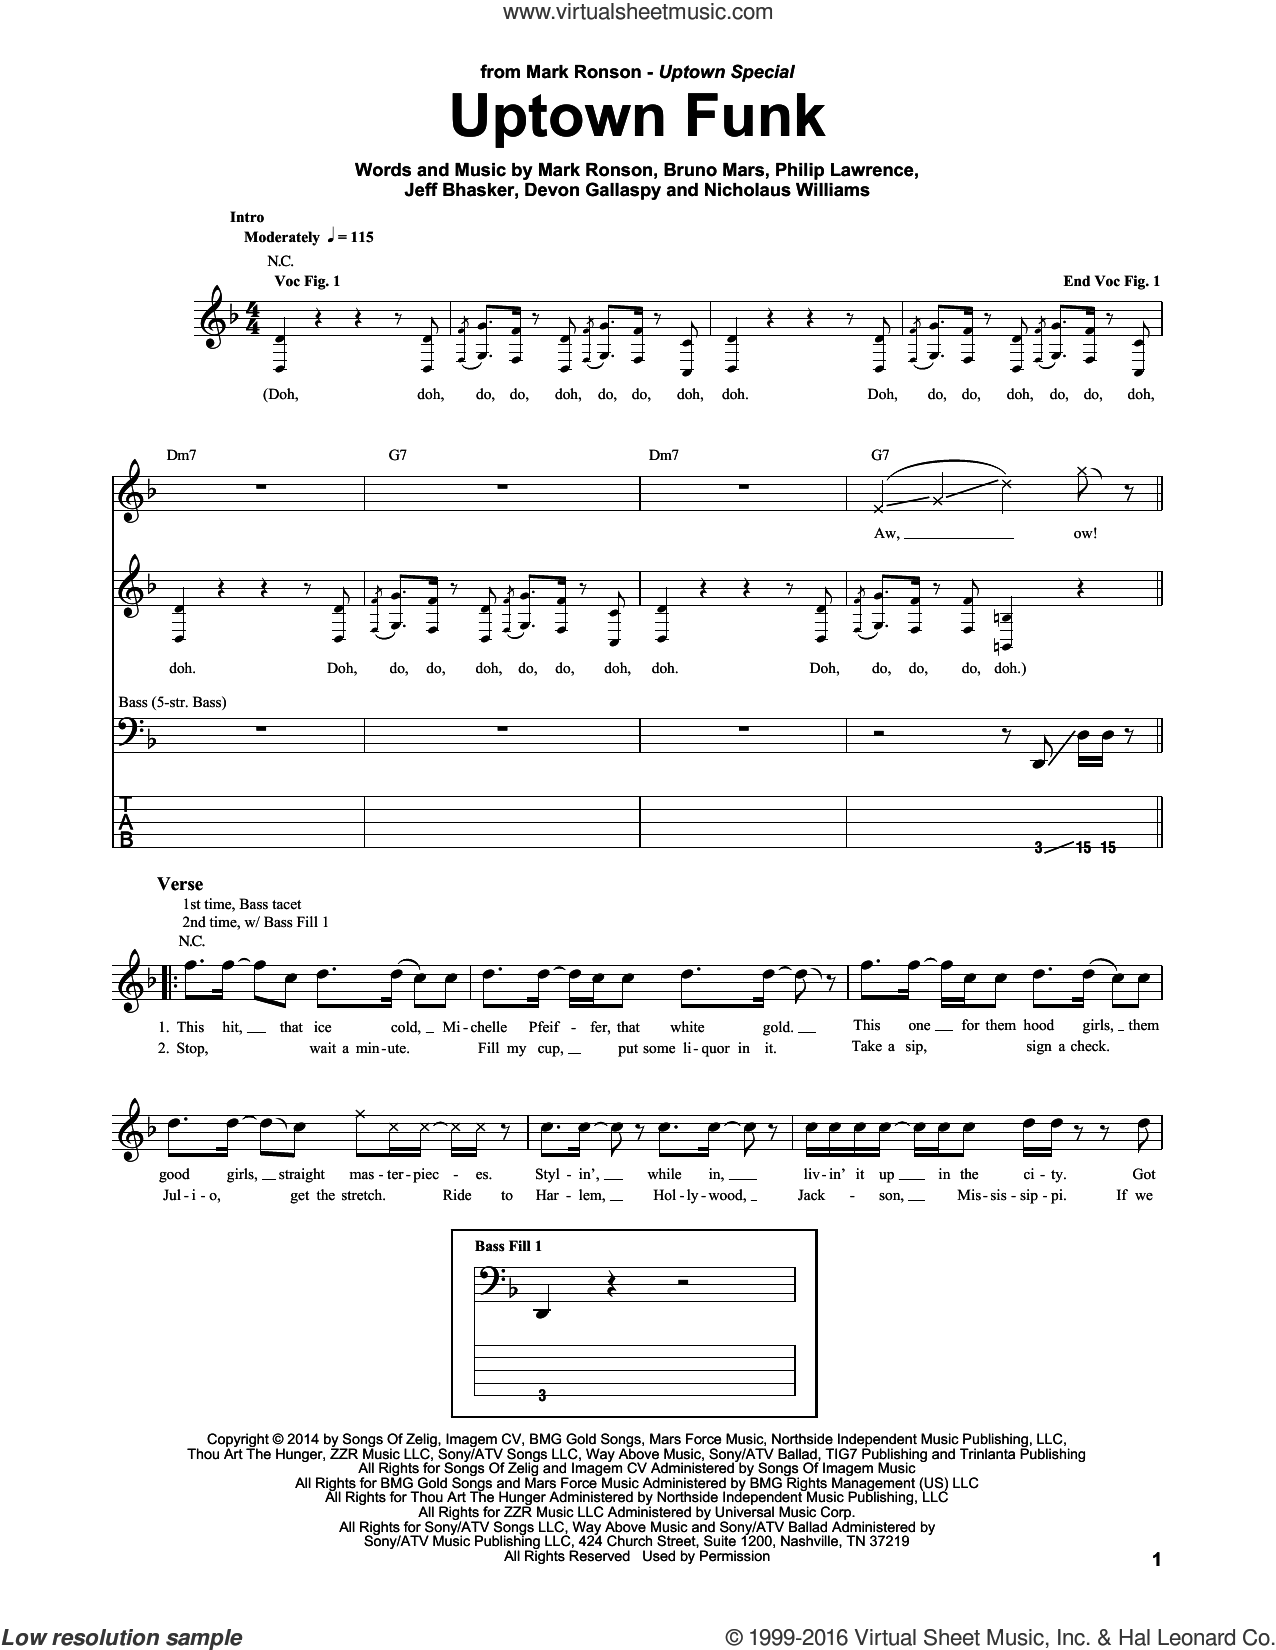 Uptown Funk (feat. Bruno Mars) sheet music for bass (tablature) (bass guitar) by Mark Ronson, Mark Ronson ft. Bruno Mars, Bruno Mars, Devon Gallaspy, Jeff Bhasker, Nicholaus Williams and Philip Lawrence, intermediate skill level